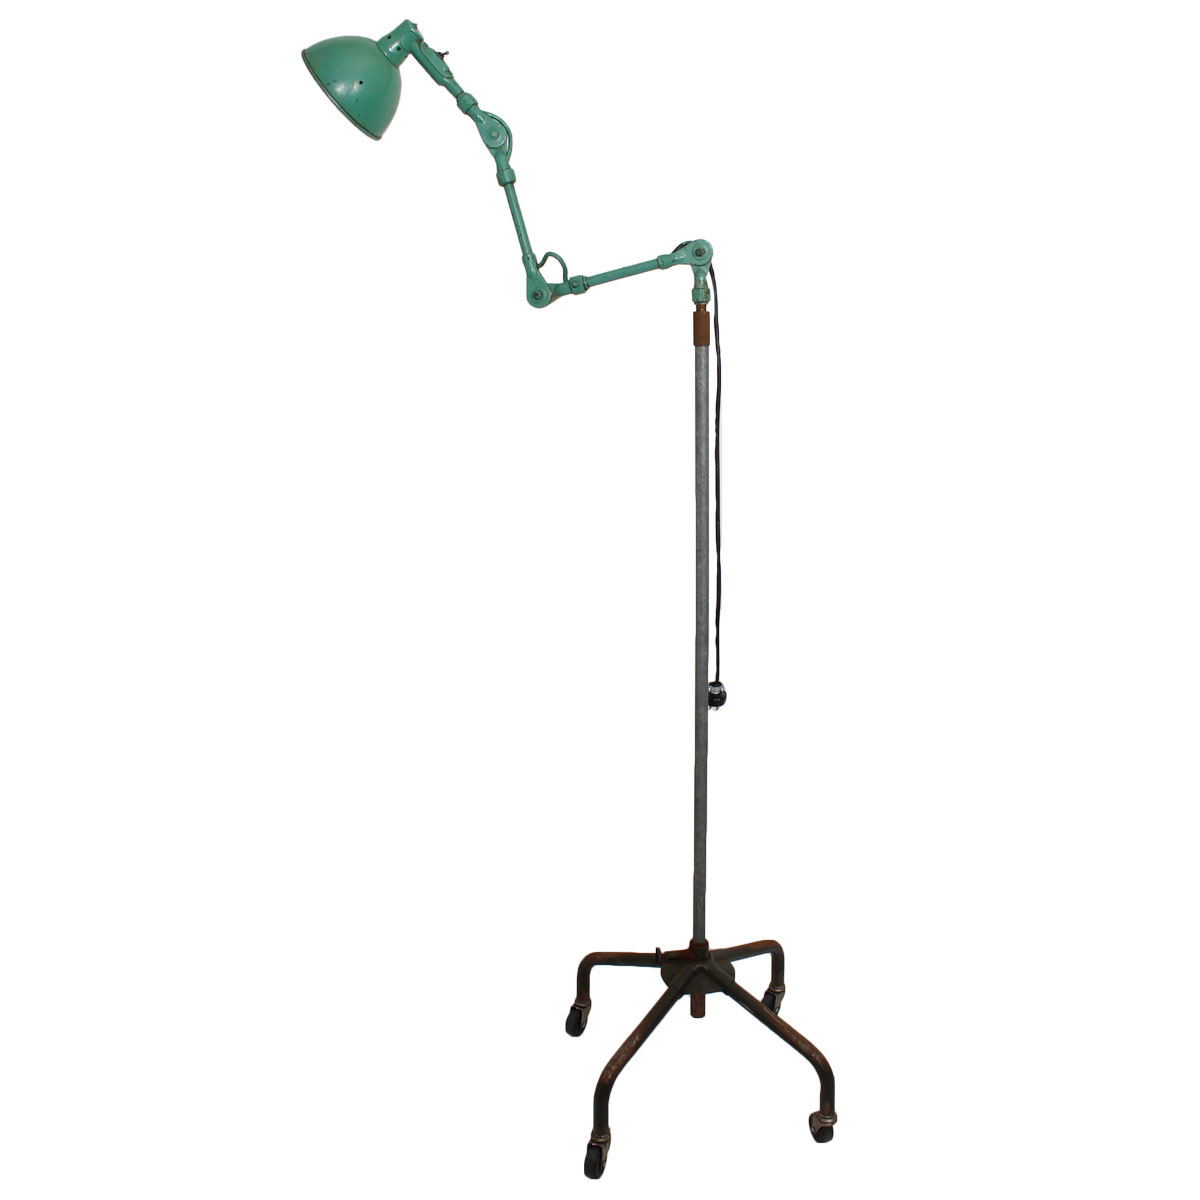 Vintage Industrial Floor Lamp on Casters